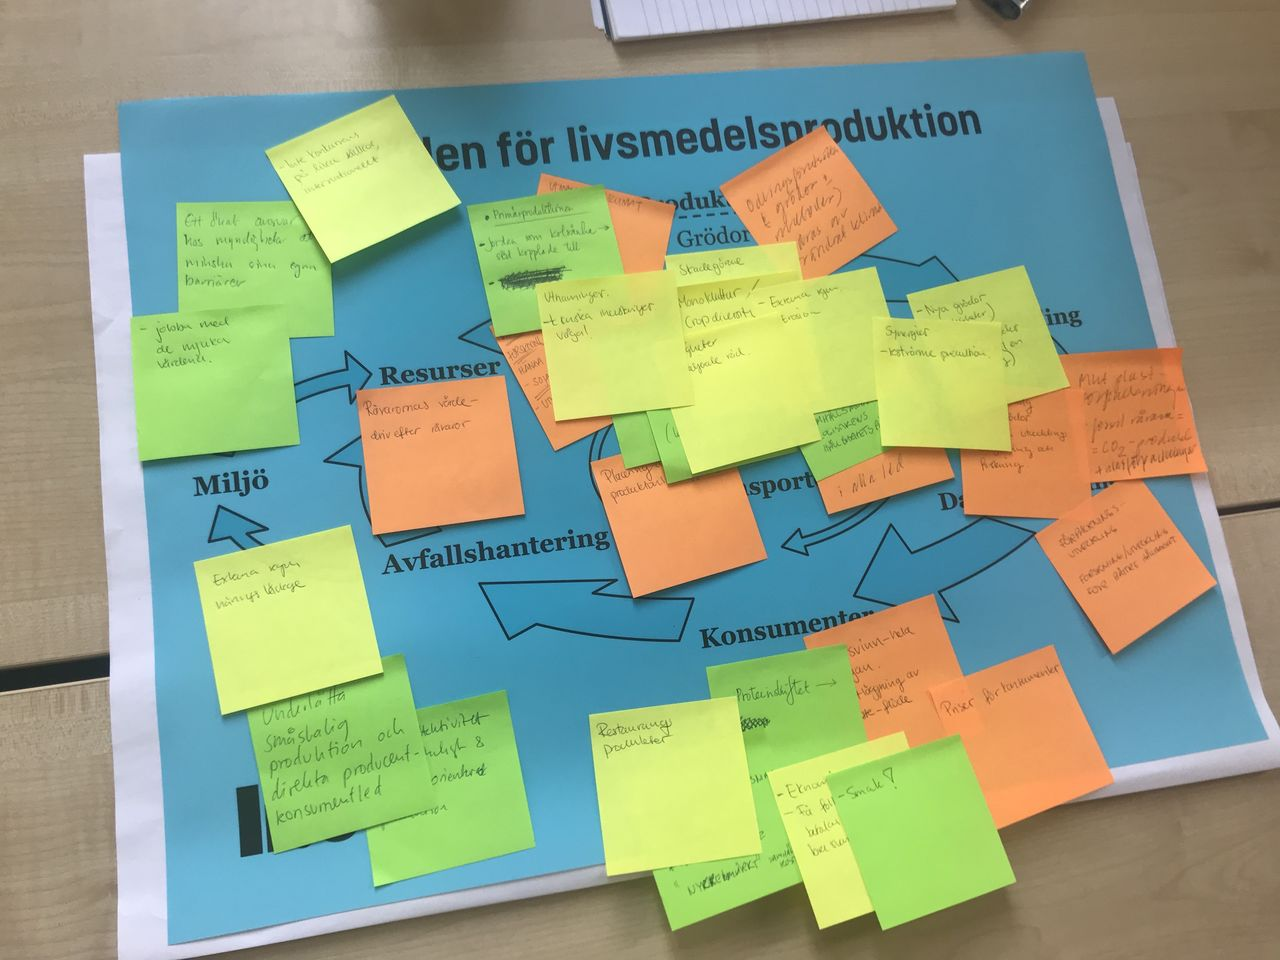 Stakeholder workshop mapping issues along the food chain in Sweden for further study.